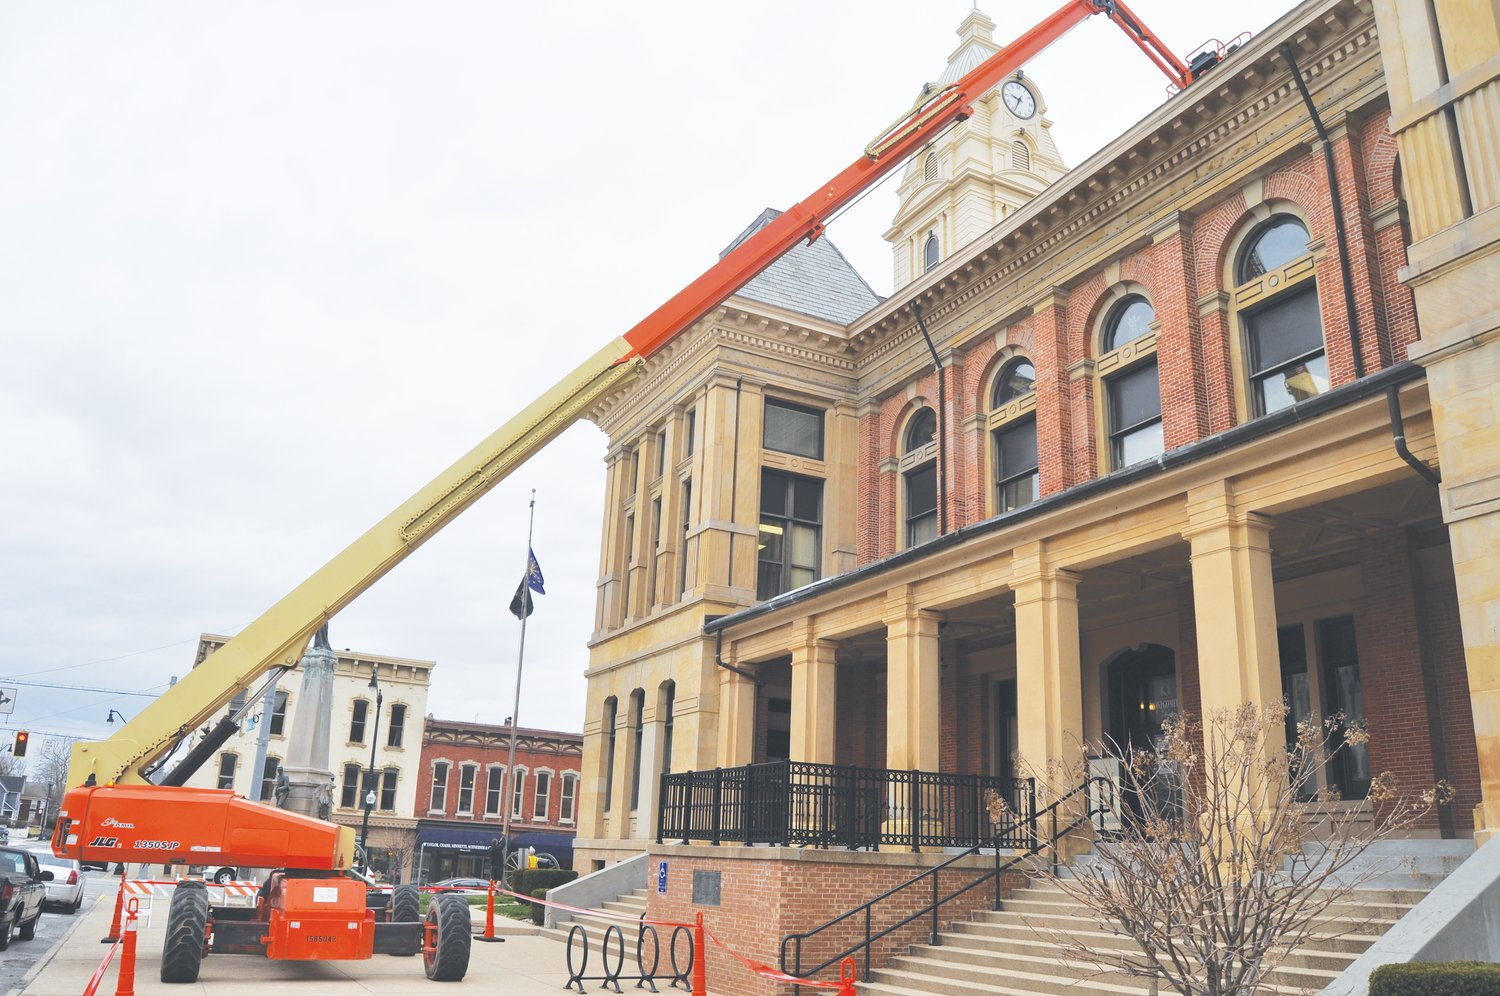 A crane touches the roof of the Montgomery County Courthouse Tuesday. Crews from South Bend-based Midland Engineering were hired to perform gutter repairs on the courthouse. The sidewalk was closed on the south side of the building during the repairs.